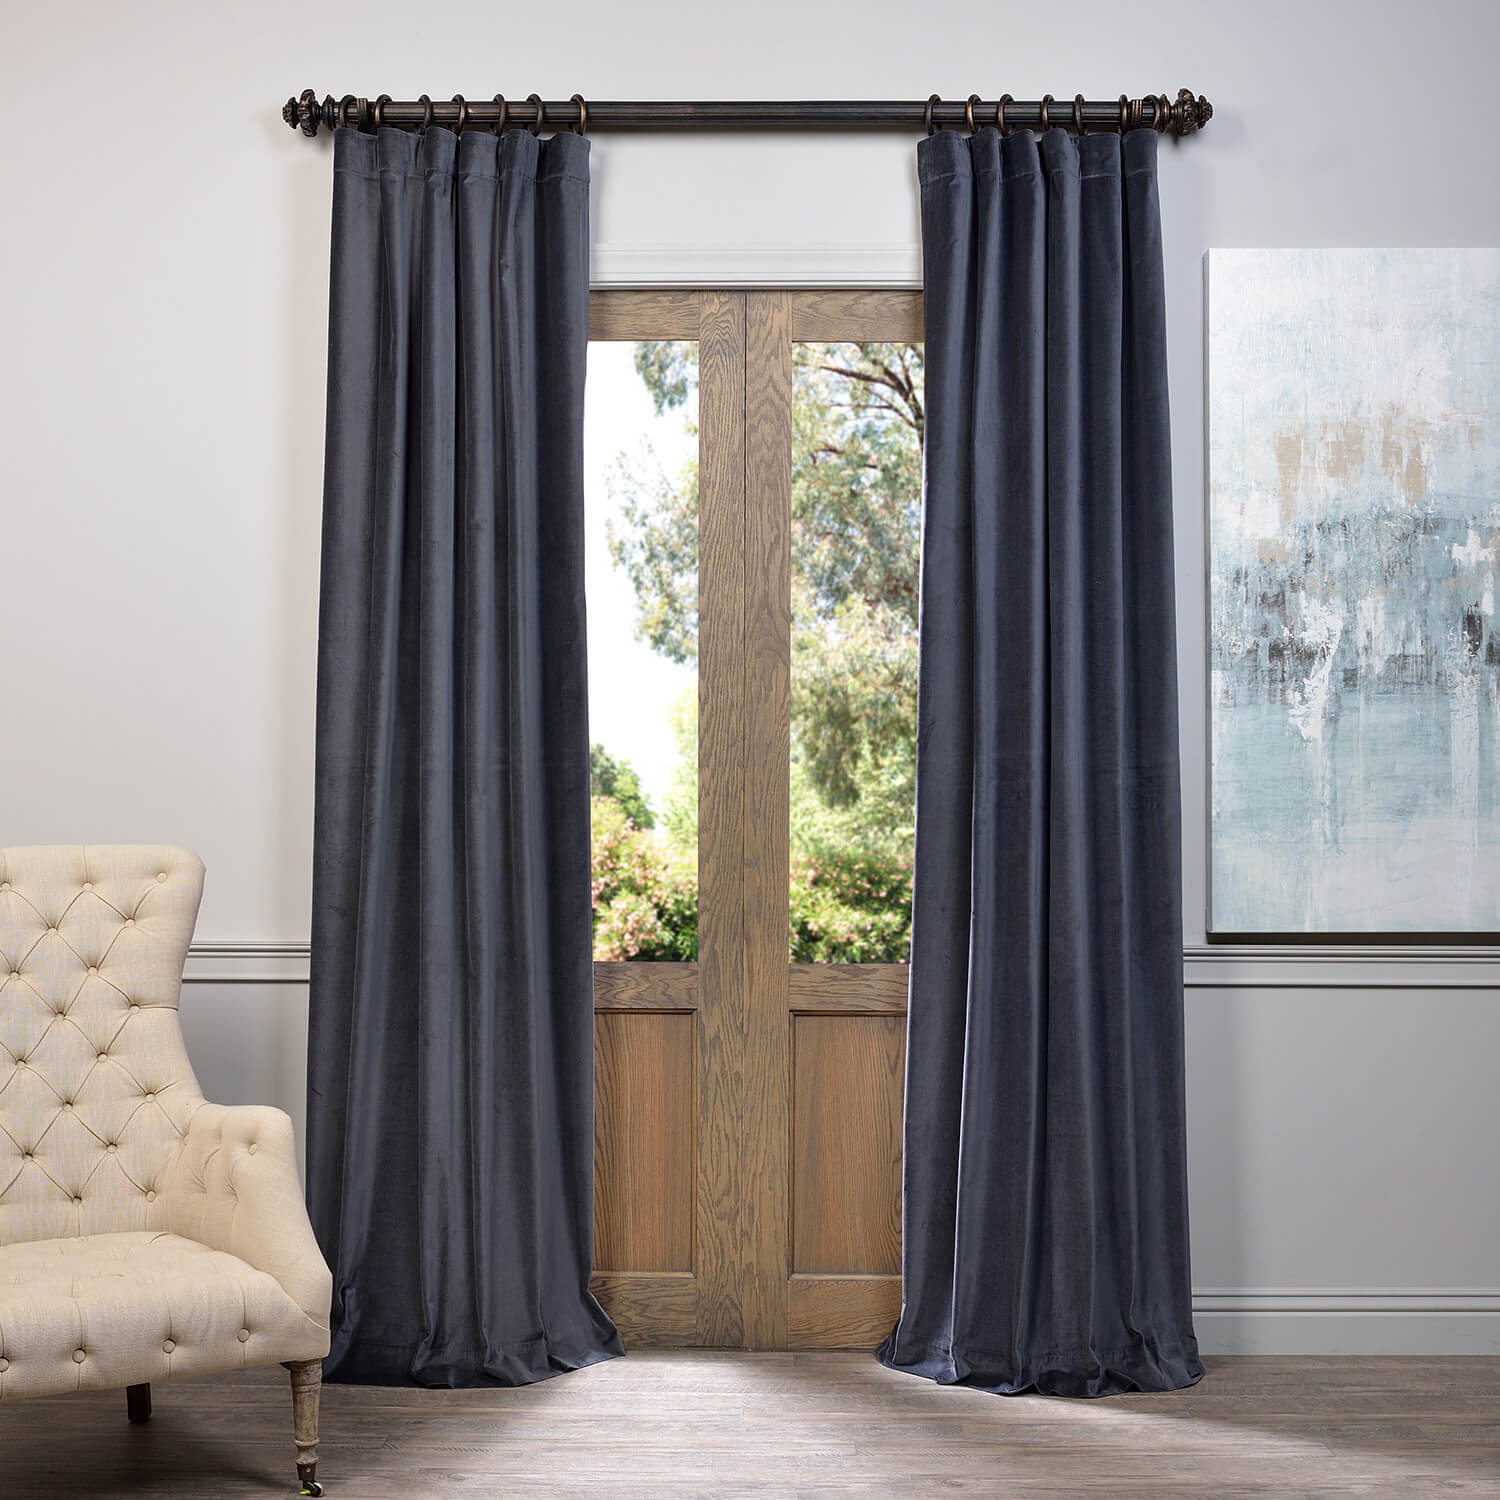 Online Drapery Store Shop Online Discount Window Curtains And Drapes